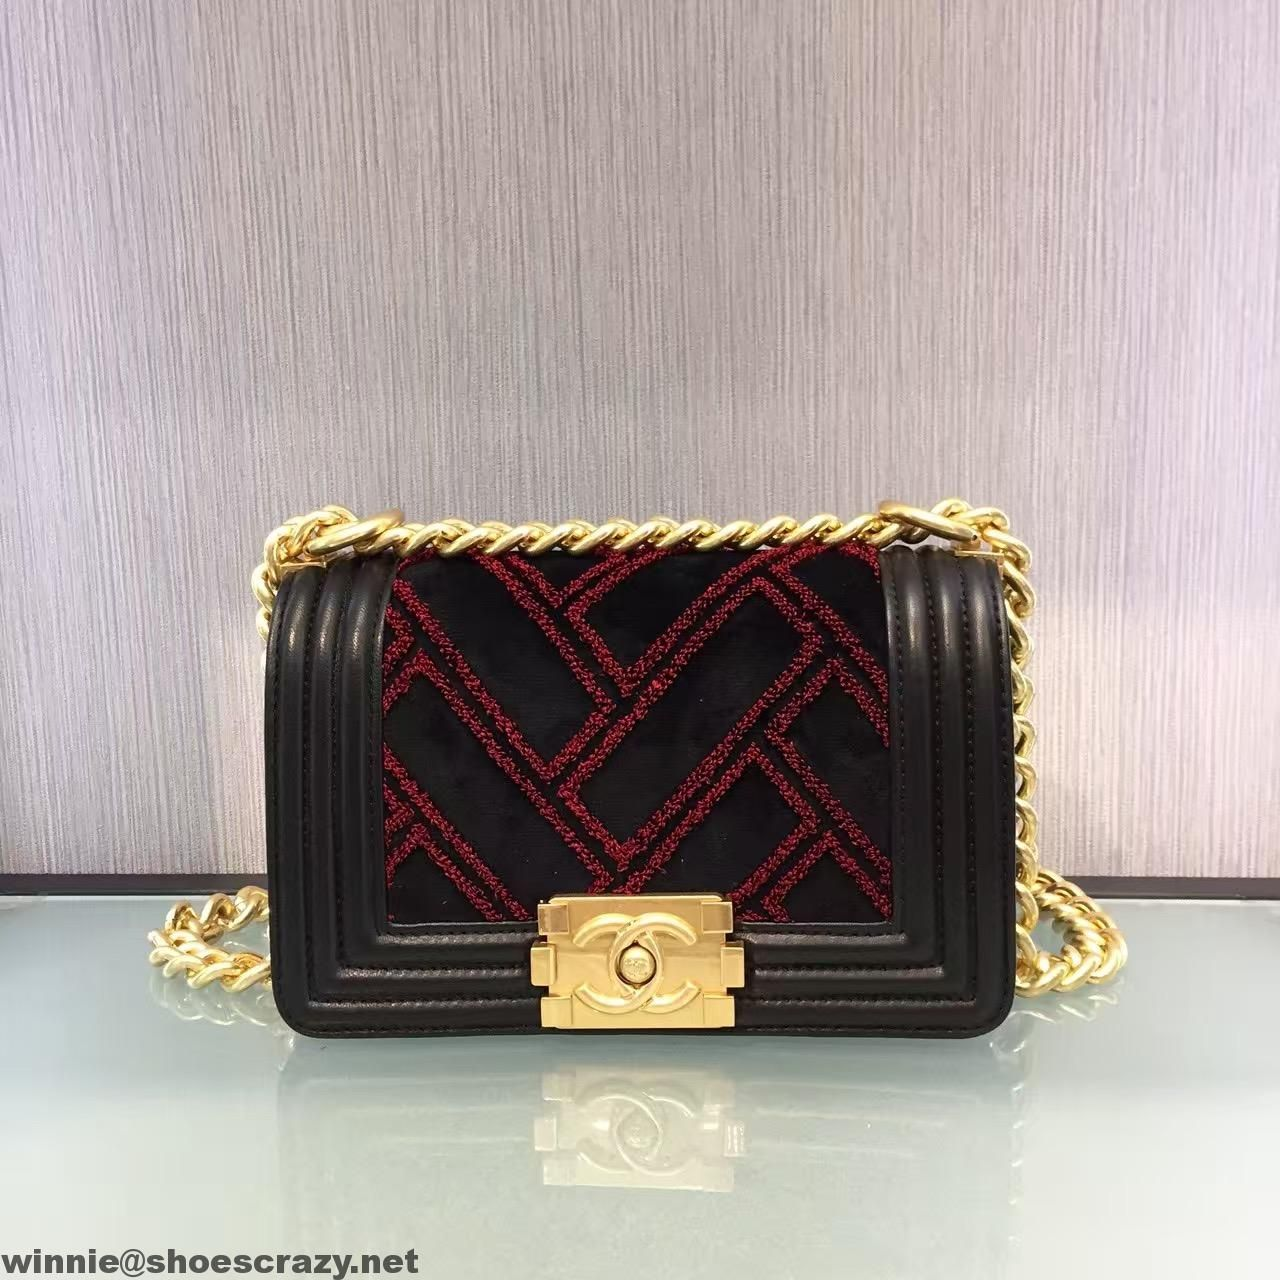 95fb9c57a974 Chanel Velvet, Calfskin & Bronze Small Boy Chanel Flap Bag 2016 ...